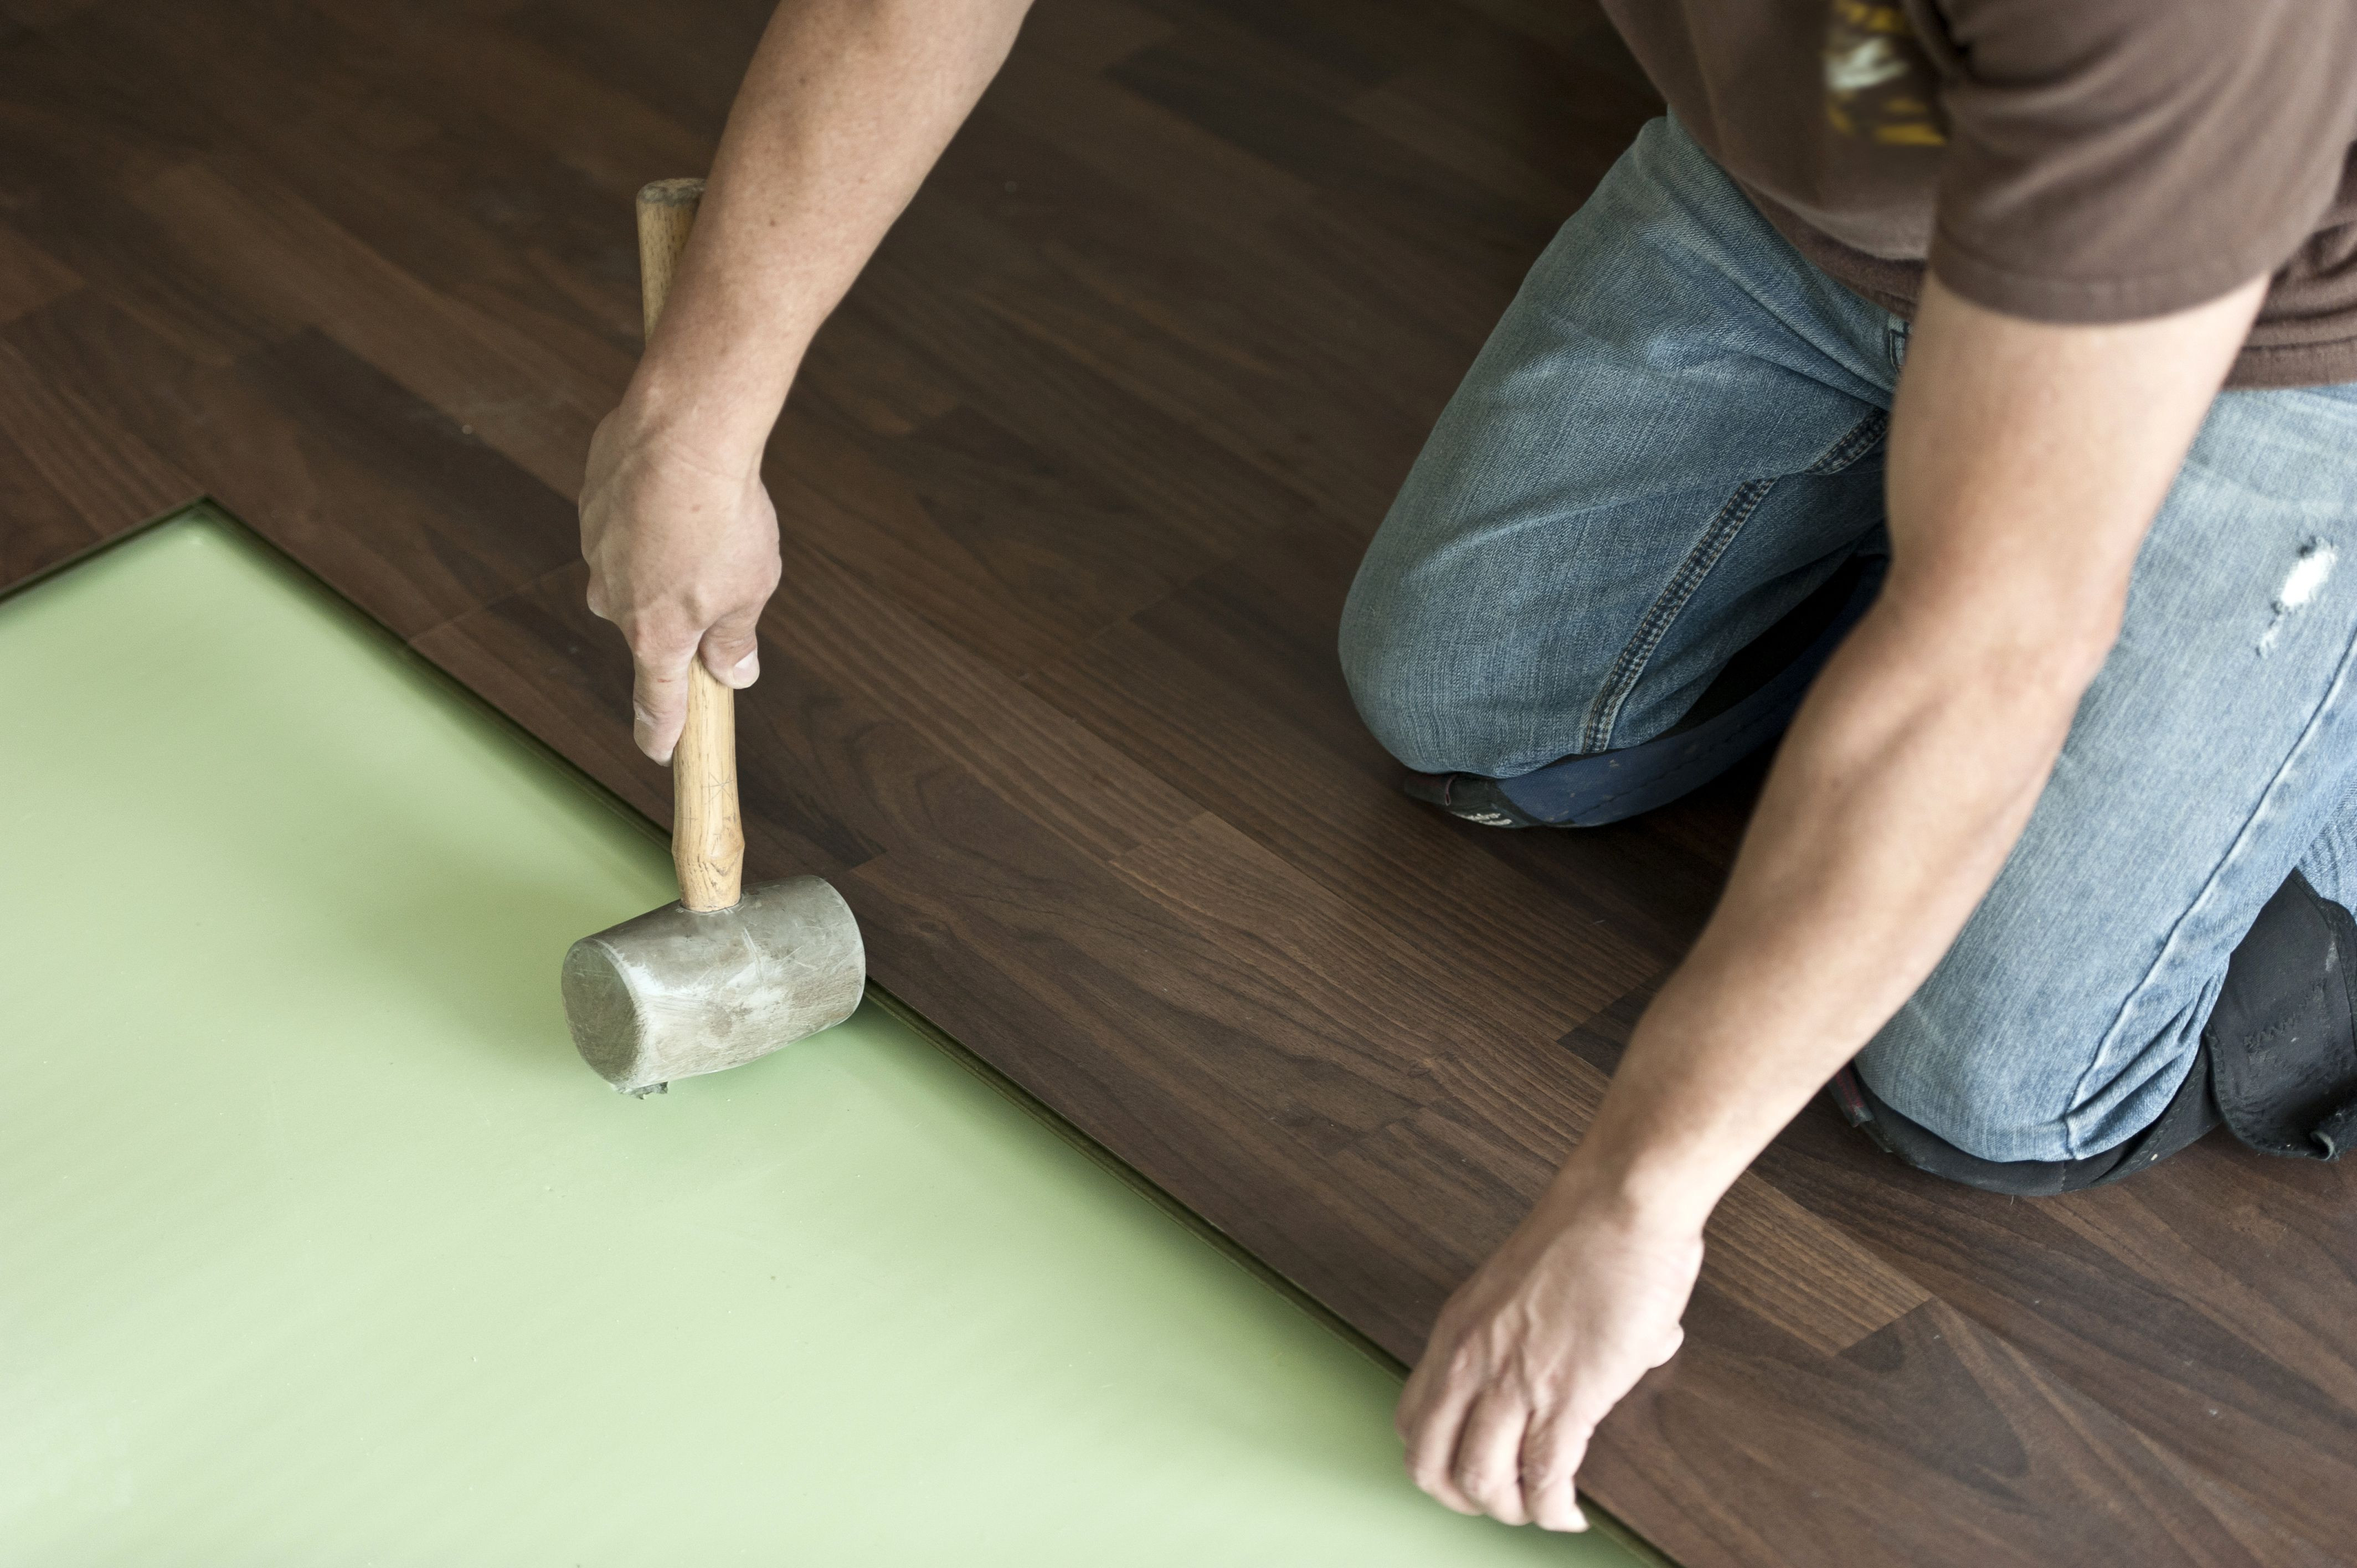 replacing carpet with hardwood floors cost of can a foam pad be use under solid hardwood flooring for installing hardwood floor 155149312 57e967d45f9b586c35ade84a